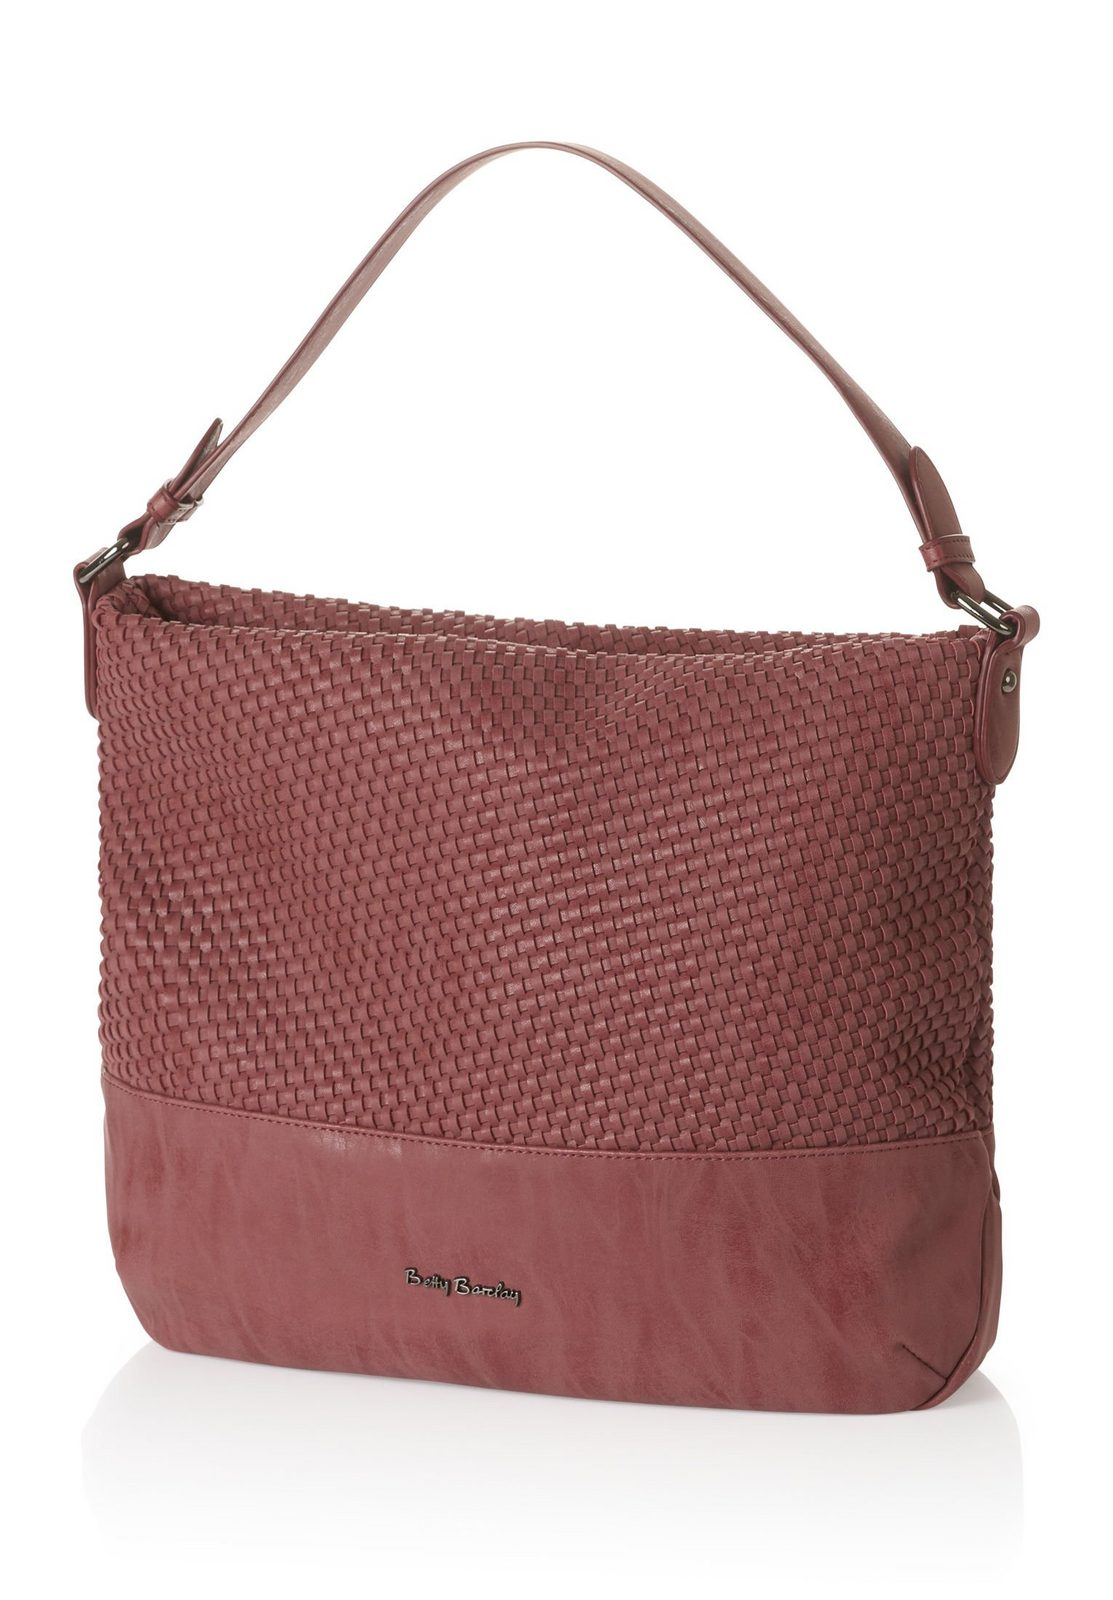 Betty Barclay Shopper mit schlichtem aber elegantem Design